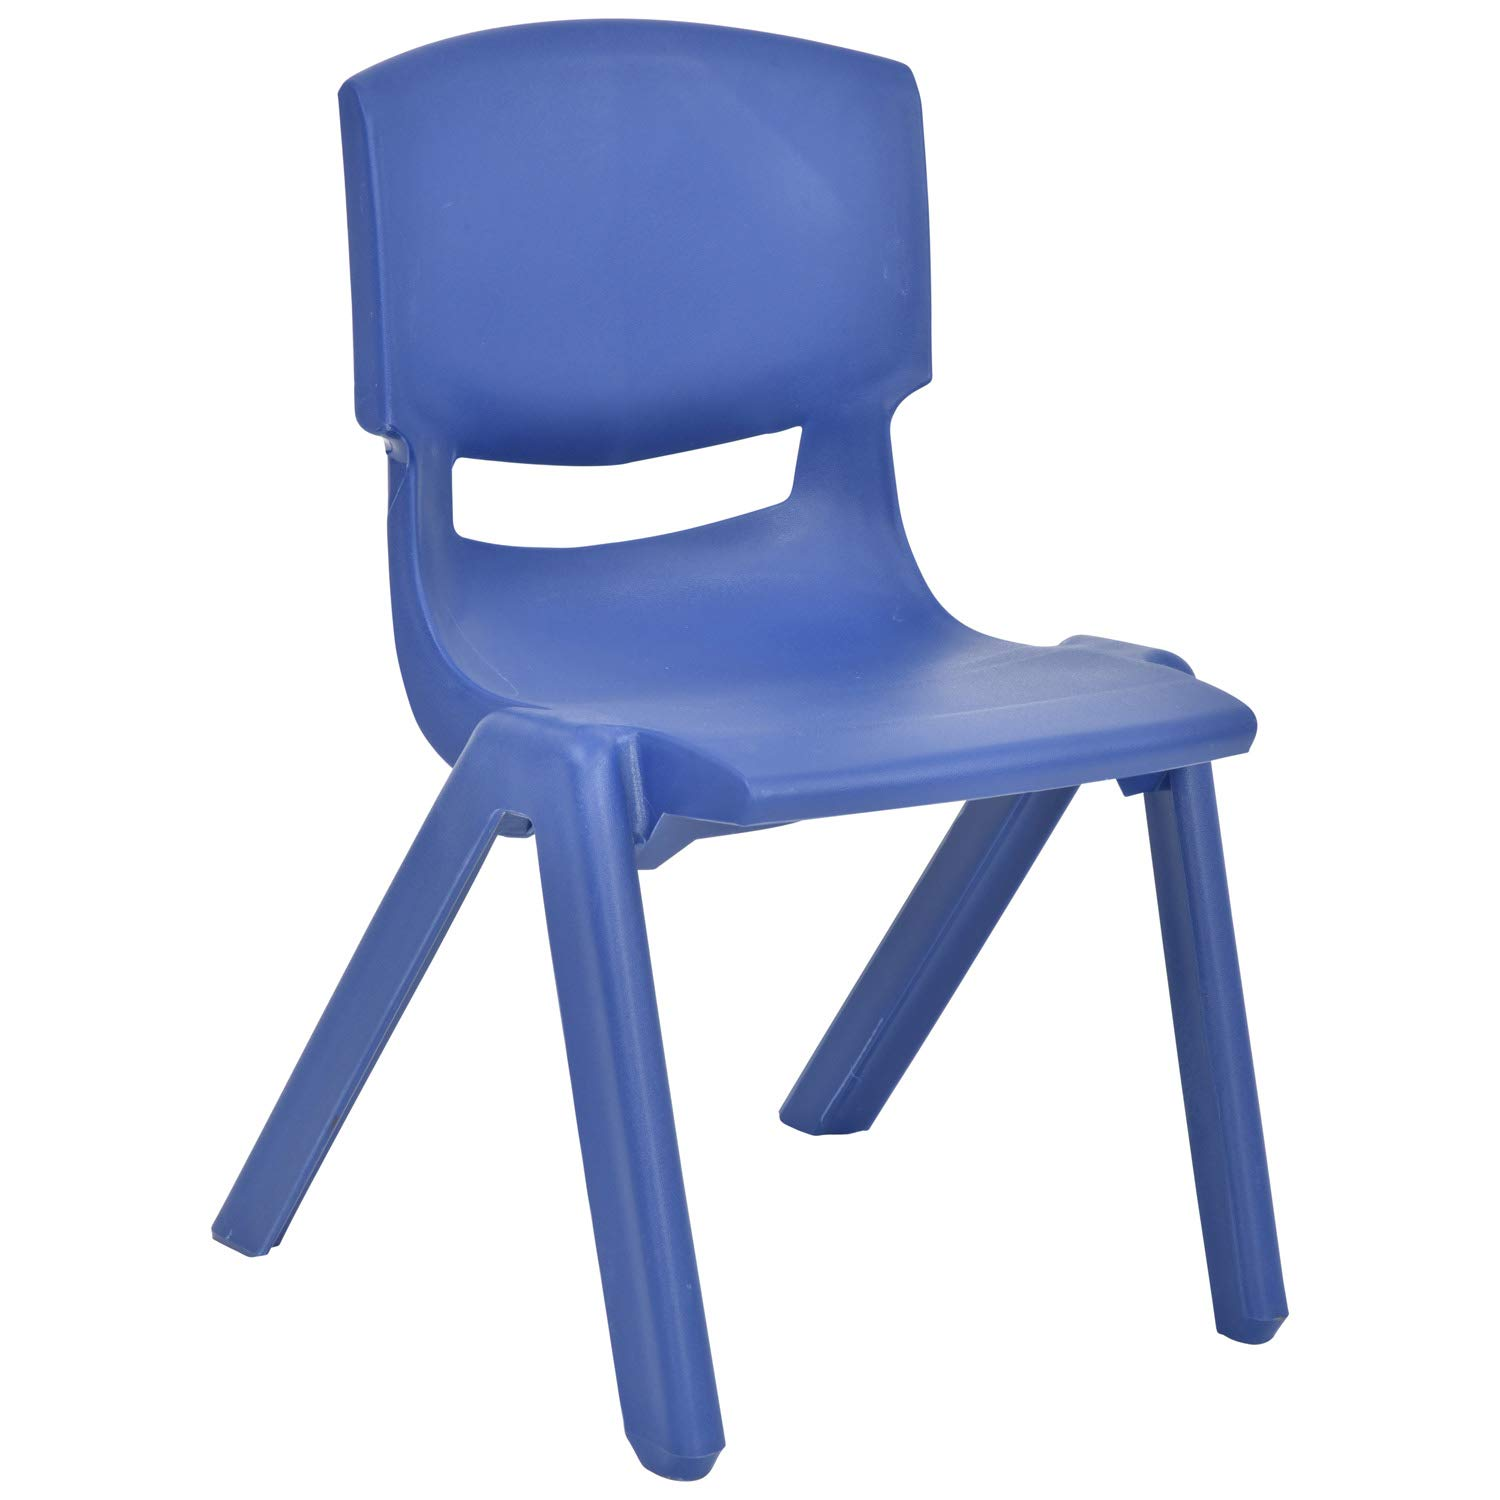 JOON Stackable Plastic Kids Learning Chairs, 20.8x12.5 Inches, The Perfect Chair for Playrooms, Schools, Daycares and Home (Dark Blue)